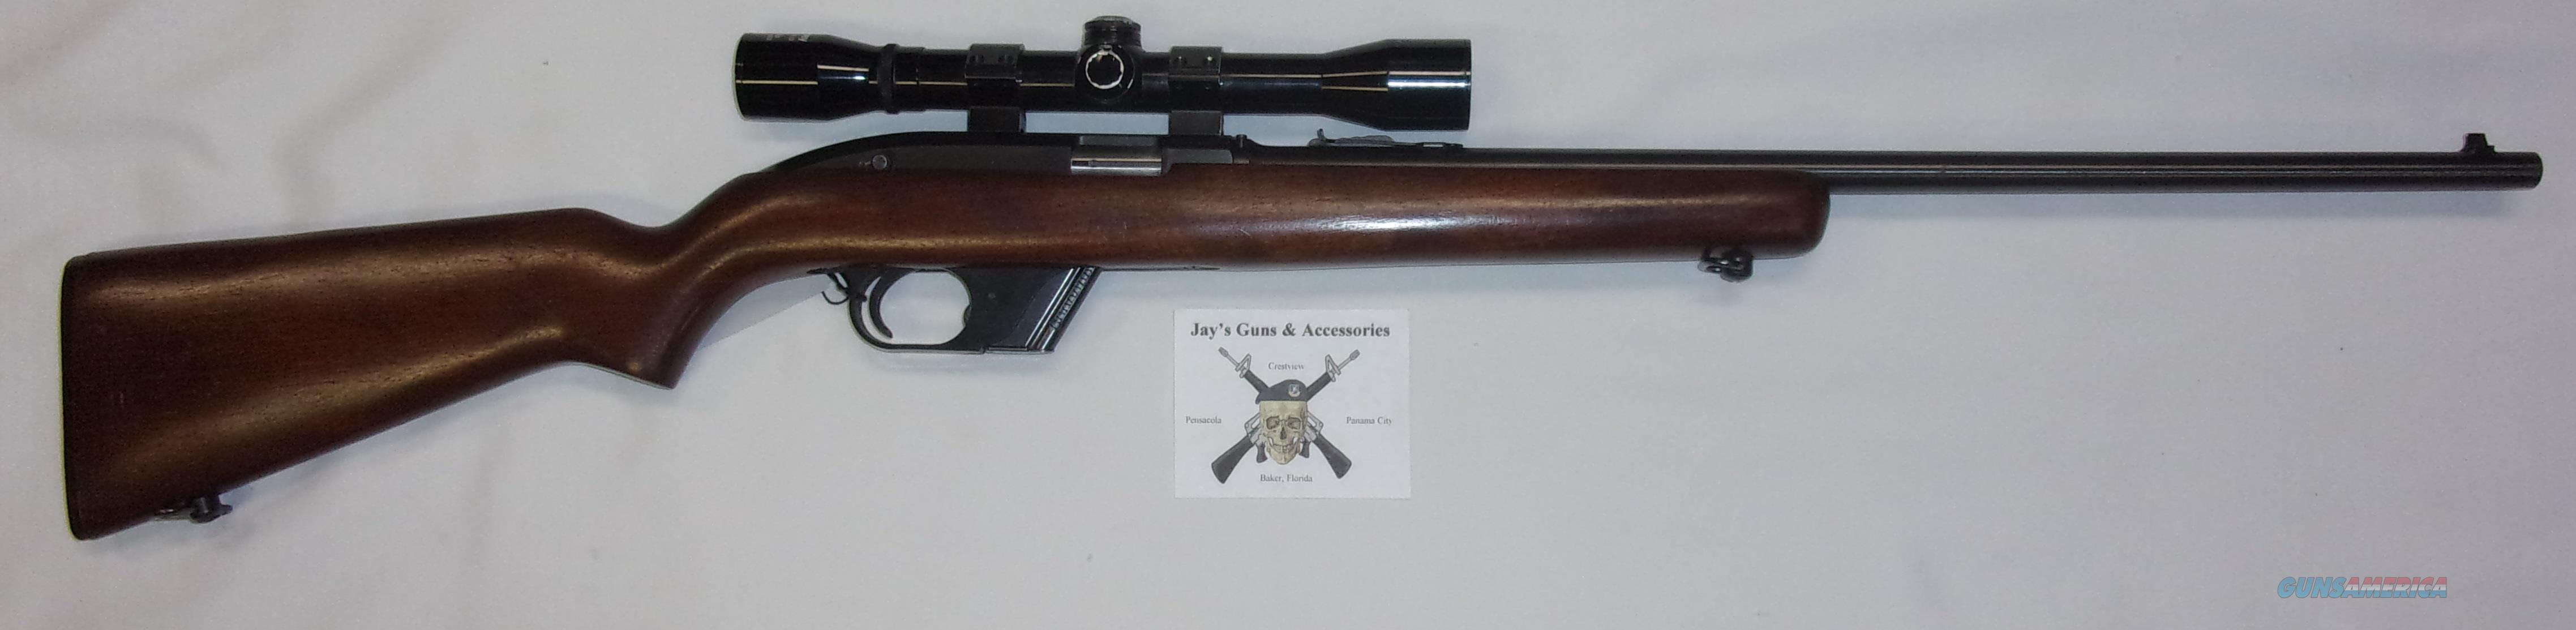 Winchester 77 w/Scope  Guns > Rifles > Winchester Rifles - Modern Bolt/Auto/Single > .22 Boys Rifles